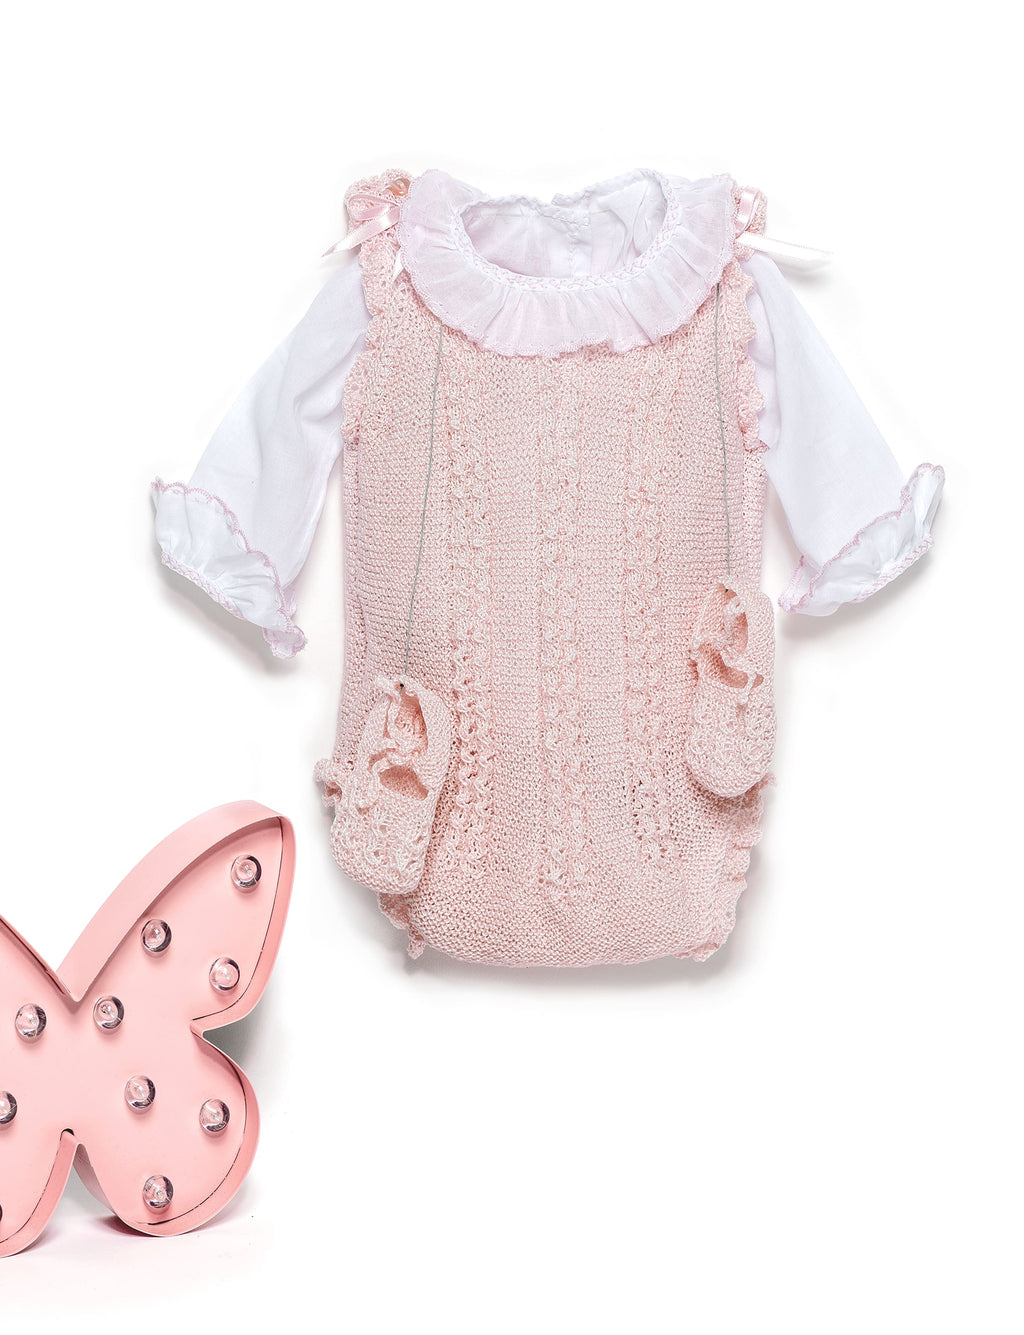 Pink newborn sleevless bodysuit and shoes set in Perlé Cotton